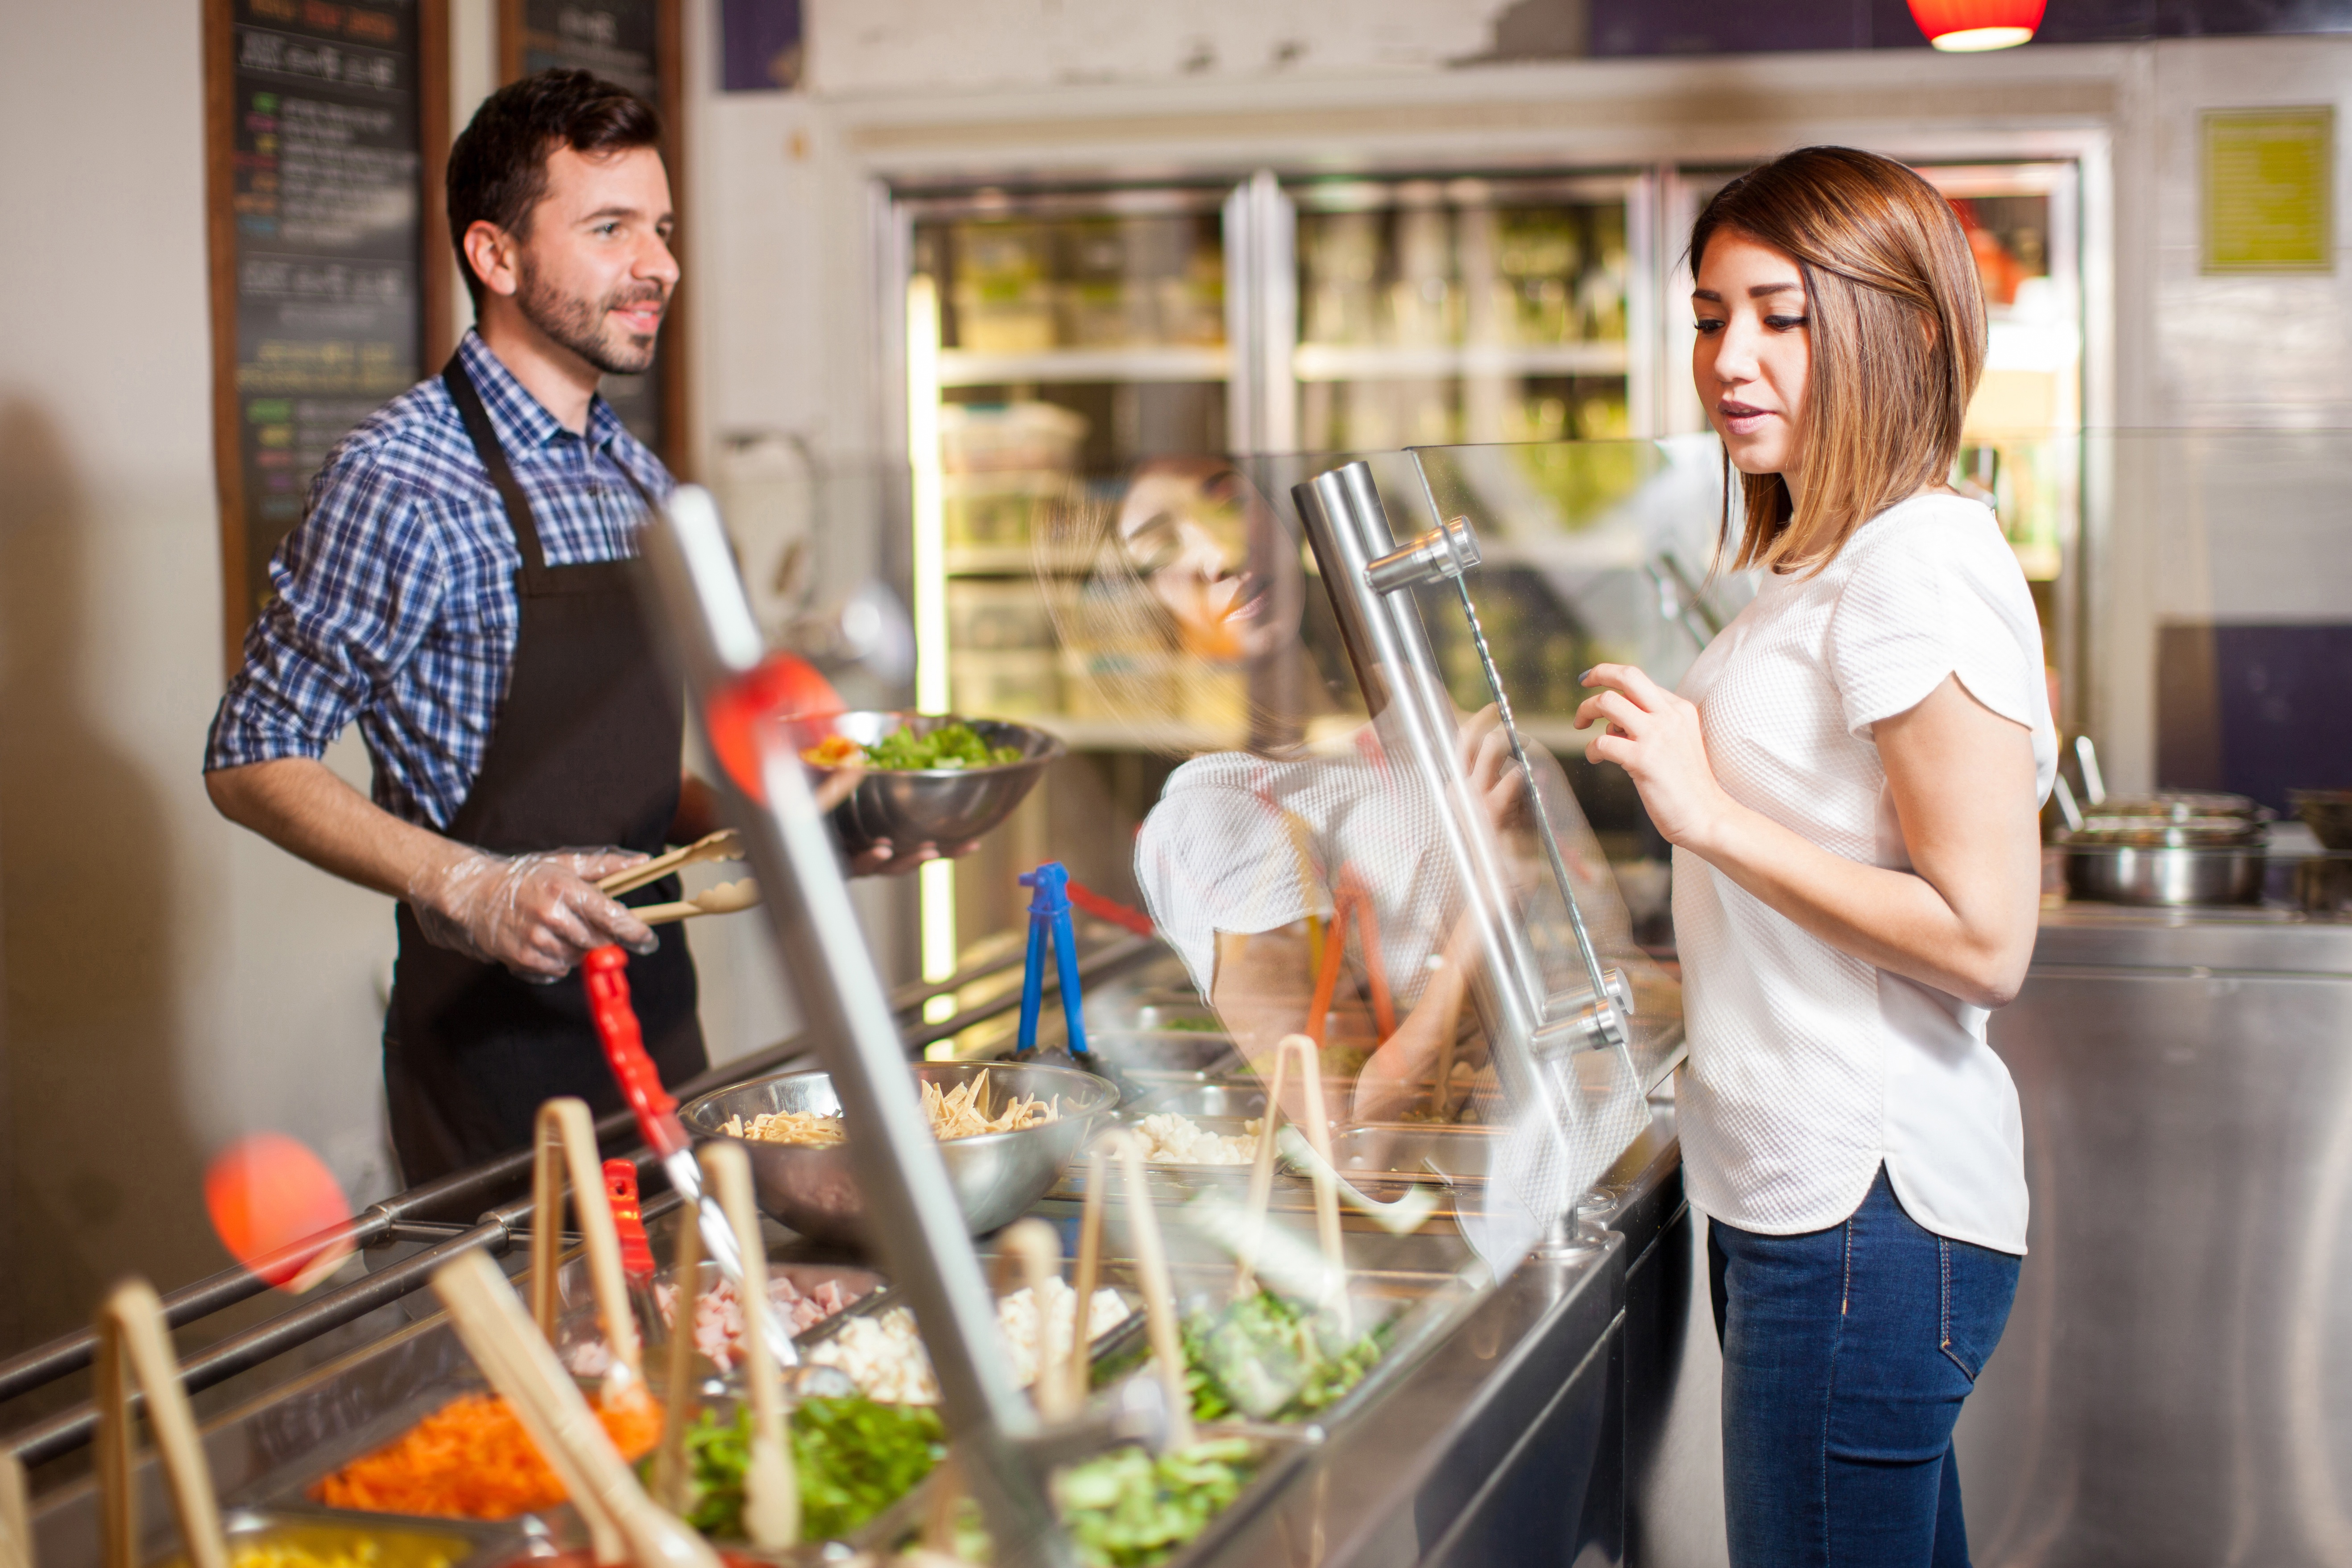 Food Retailers are Addressing Consumer Needs and Demands for Food Safety, Quality and Transparency